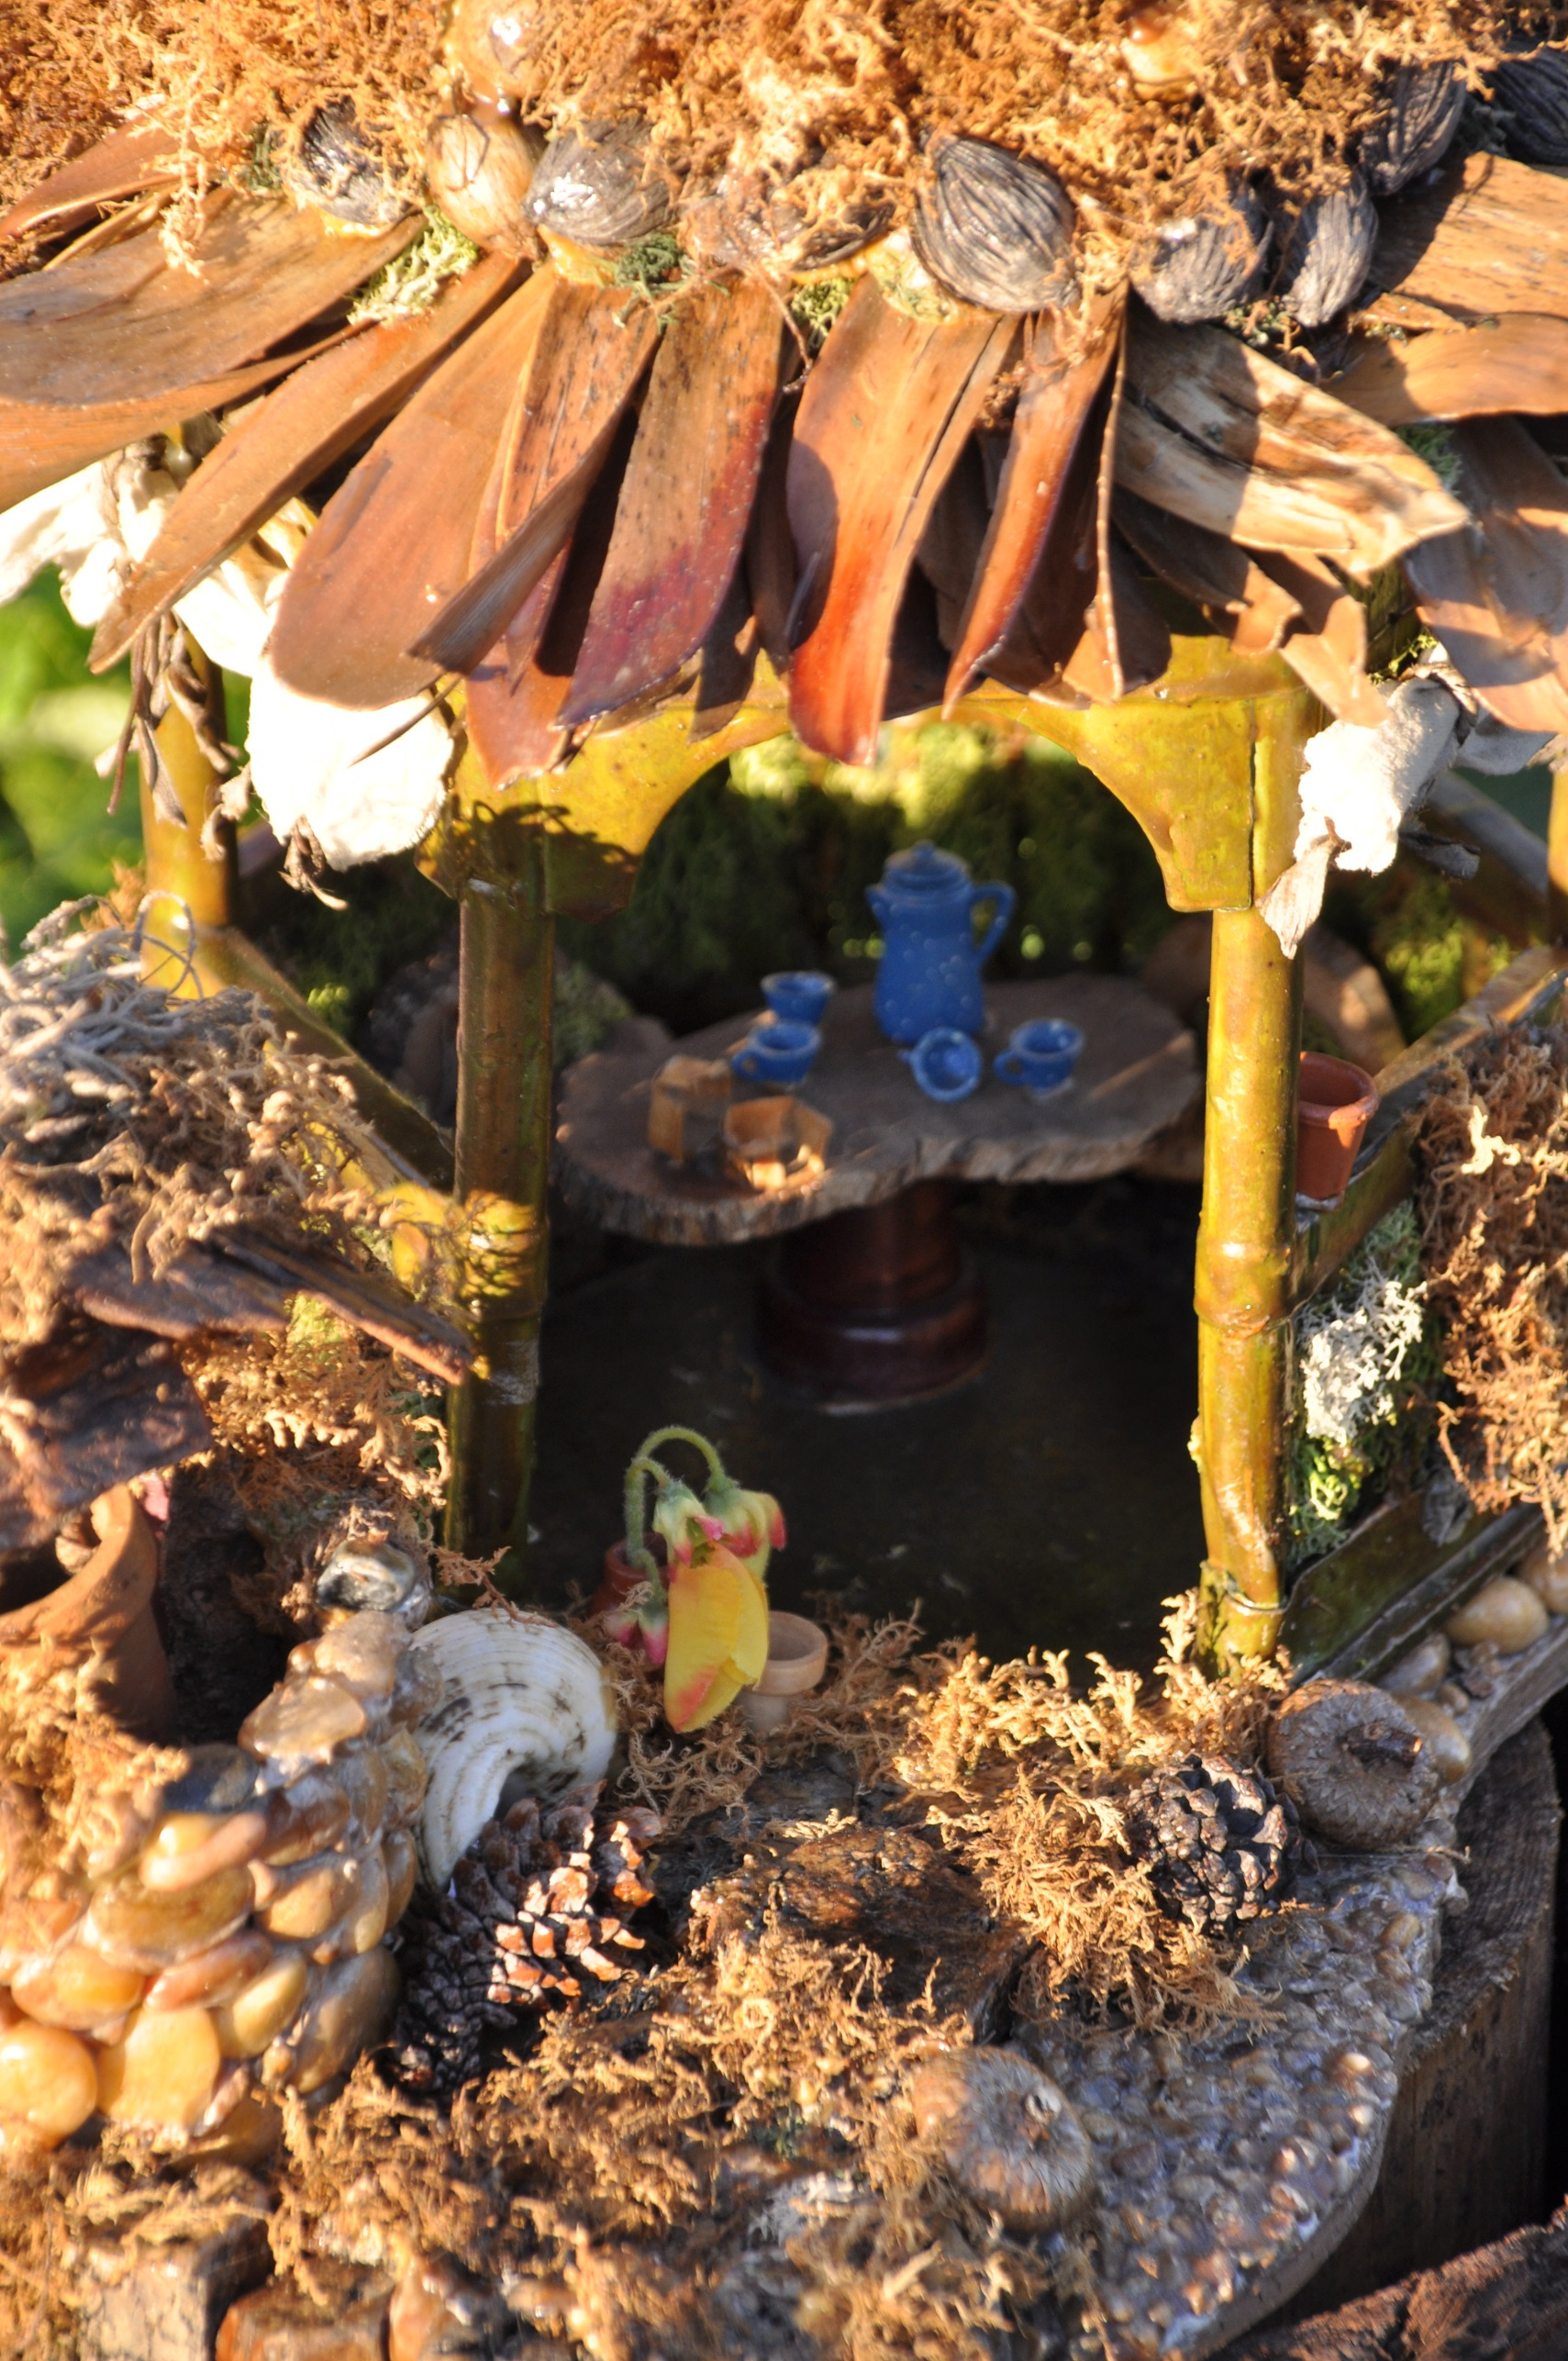 Its hard to try to find all the little houses!